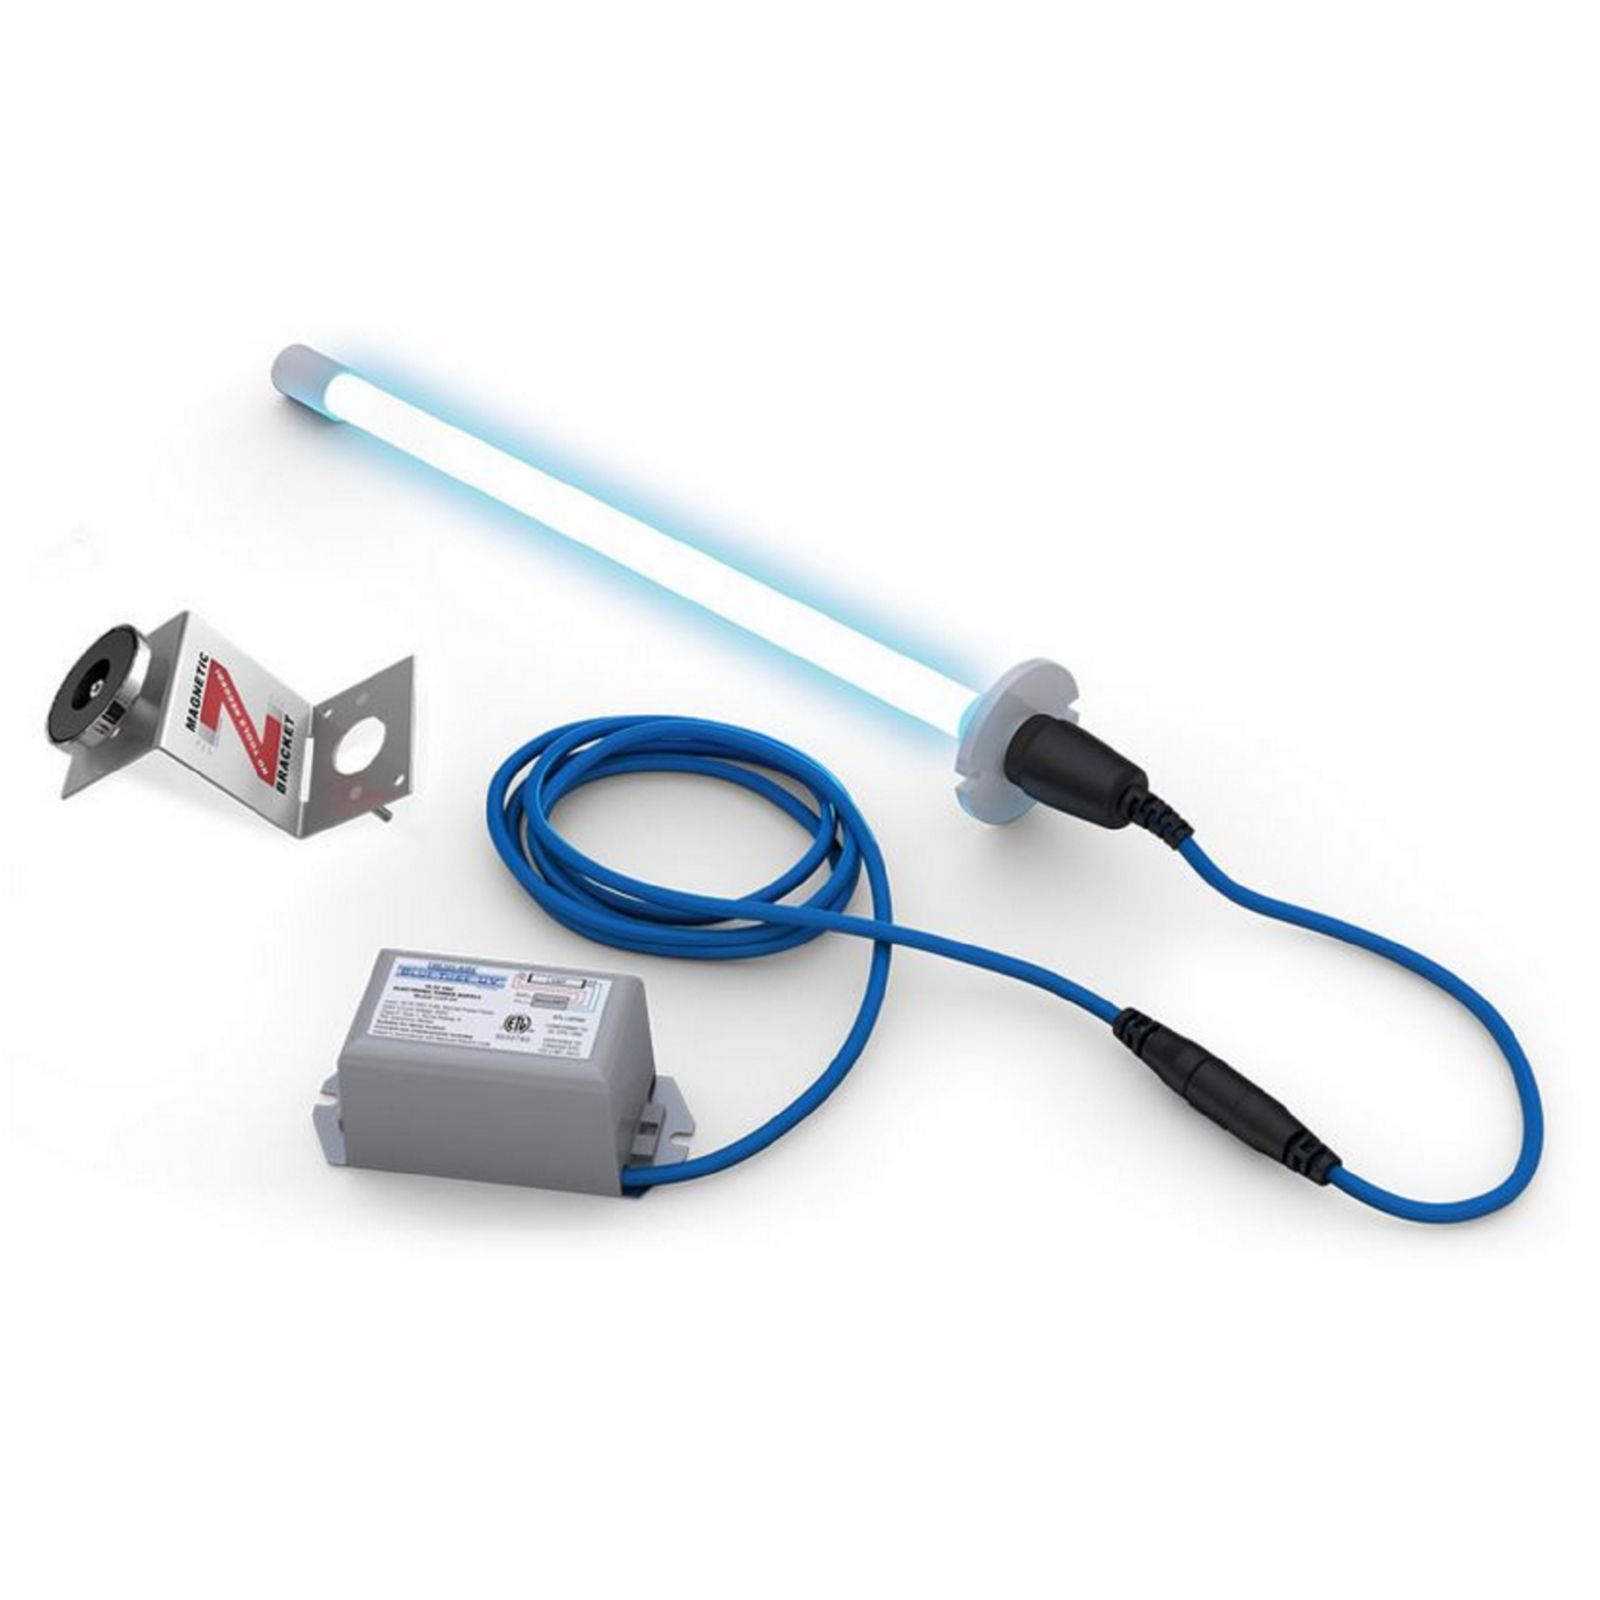 Fresh-Aire TUV-BTER-OS - Blue-Tube UV from Fresh-Aire UV, 18-32 VAC power supply and 1 year odor control UV-C lamp.